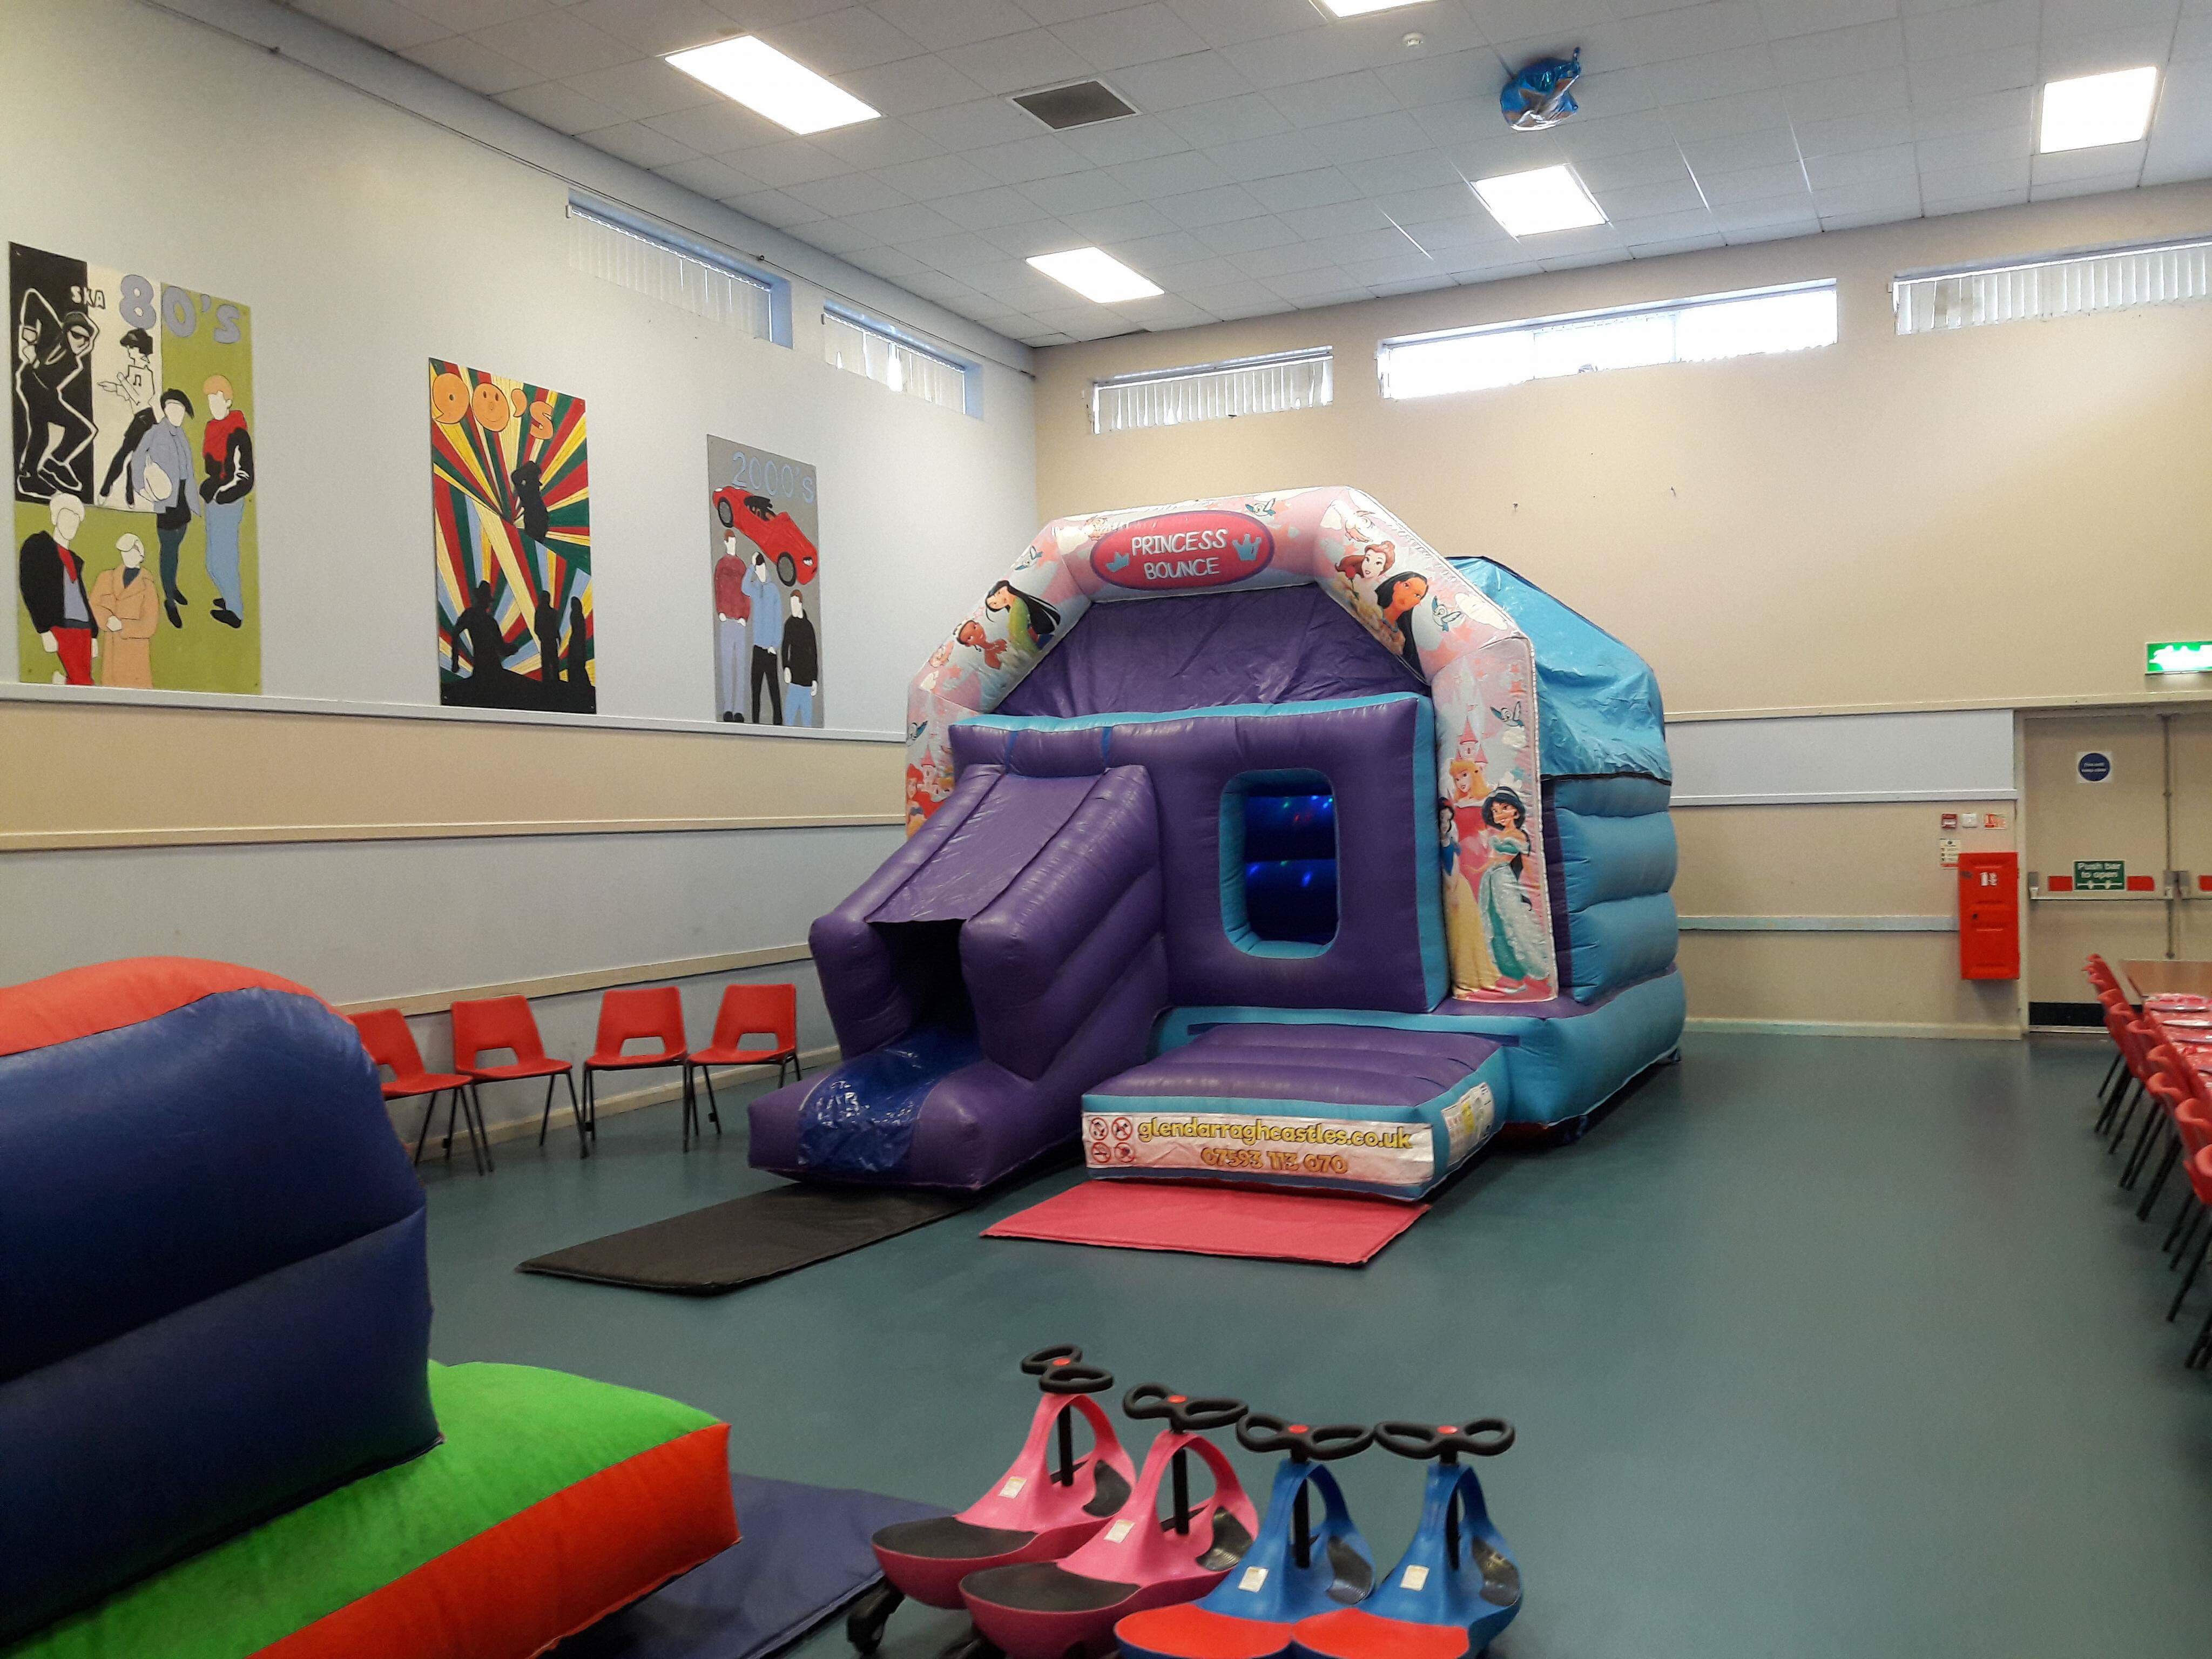 Couch To 5k Newtownards Bouncy Castle Hire Hot Tub Hire Marquee Hire Newtownards